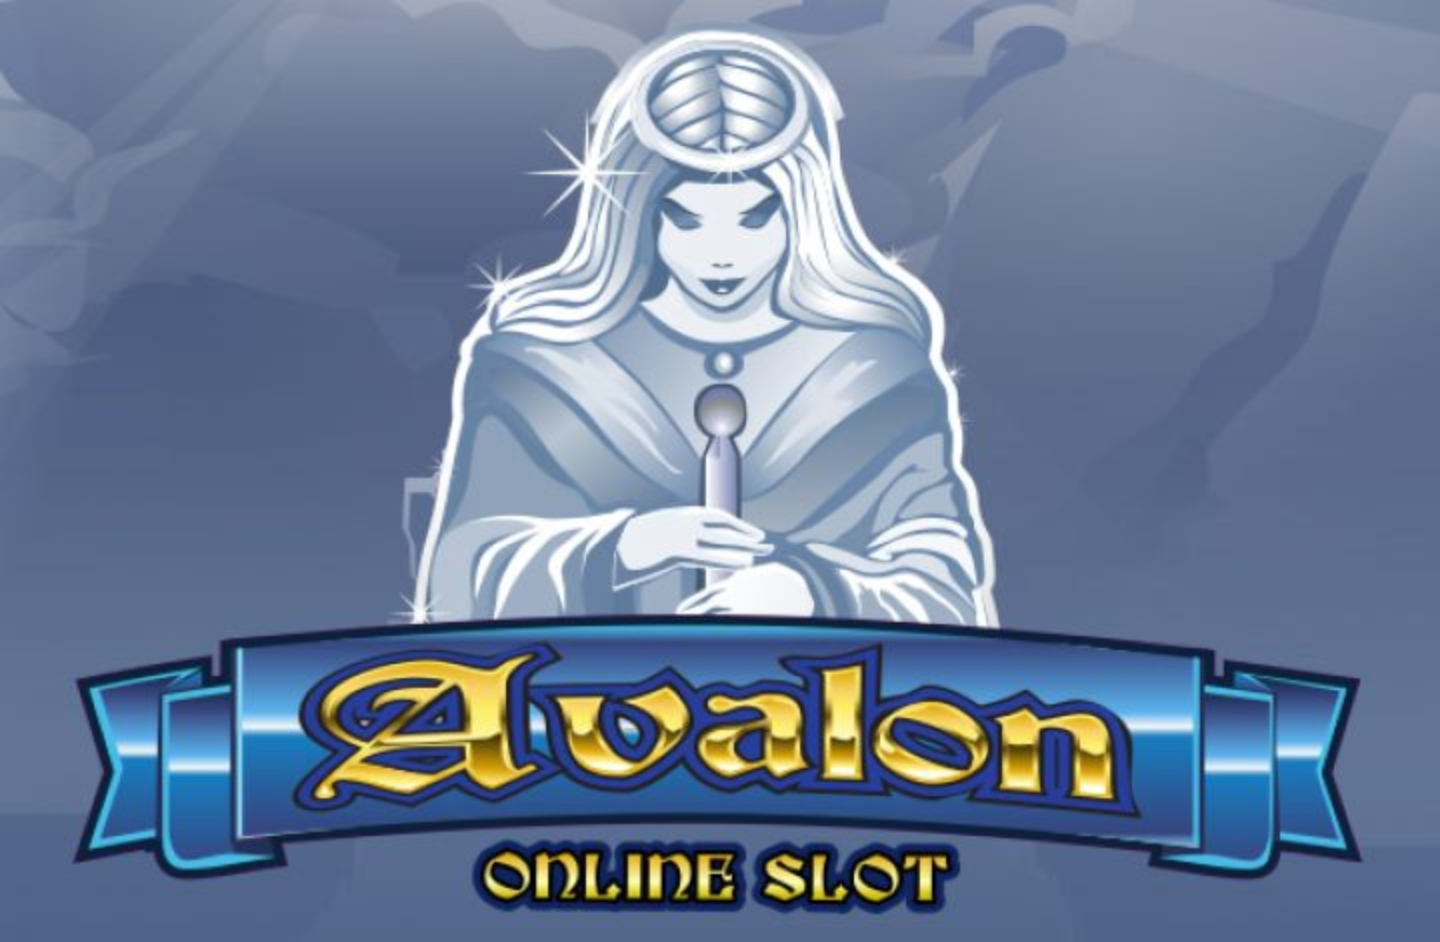 The Avalon Scratch Online Slot Demo Game by Microgaming